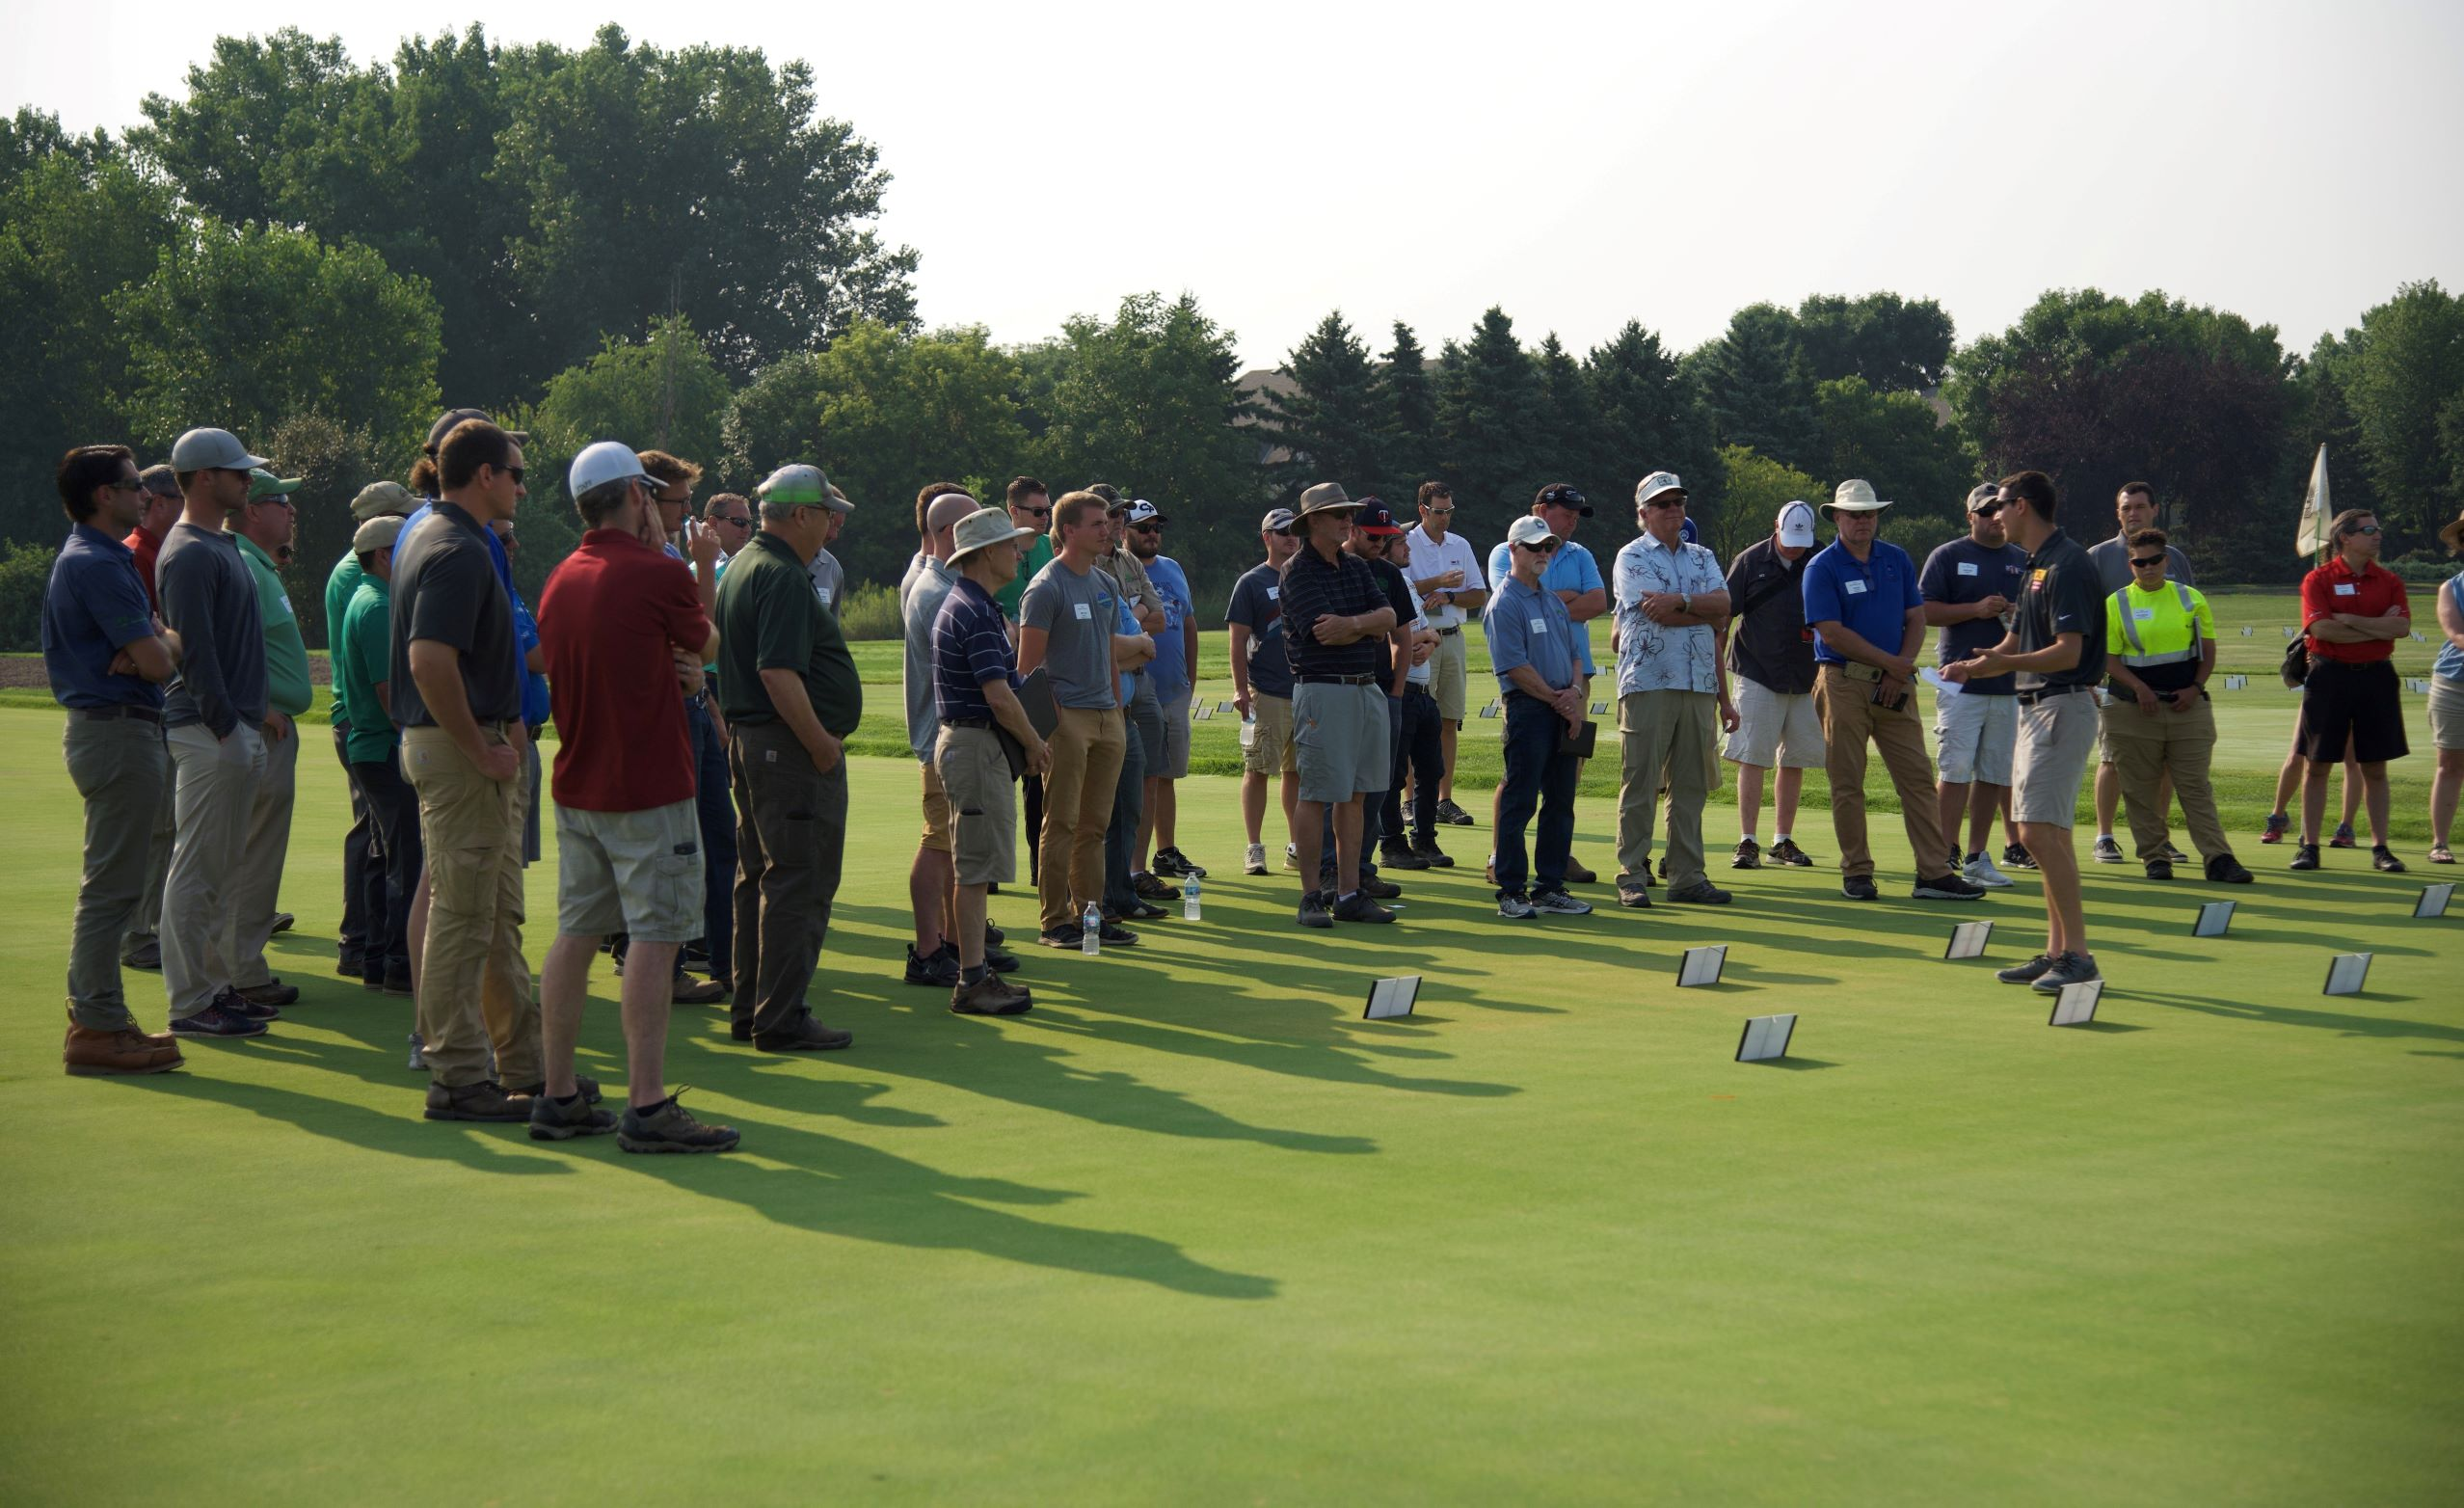 person on golf greens presenting research results to field day audience of 40 people